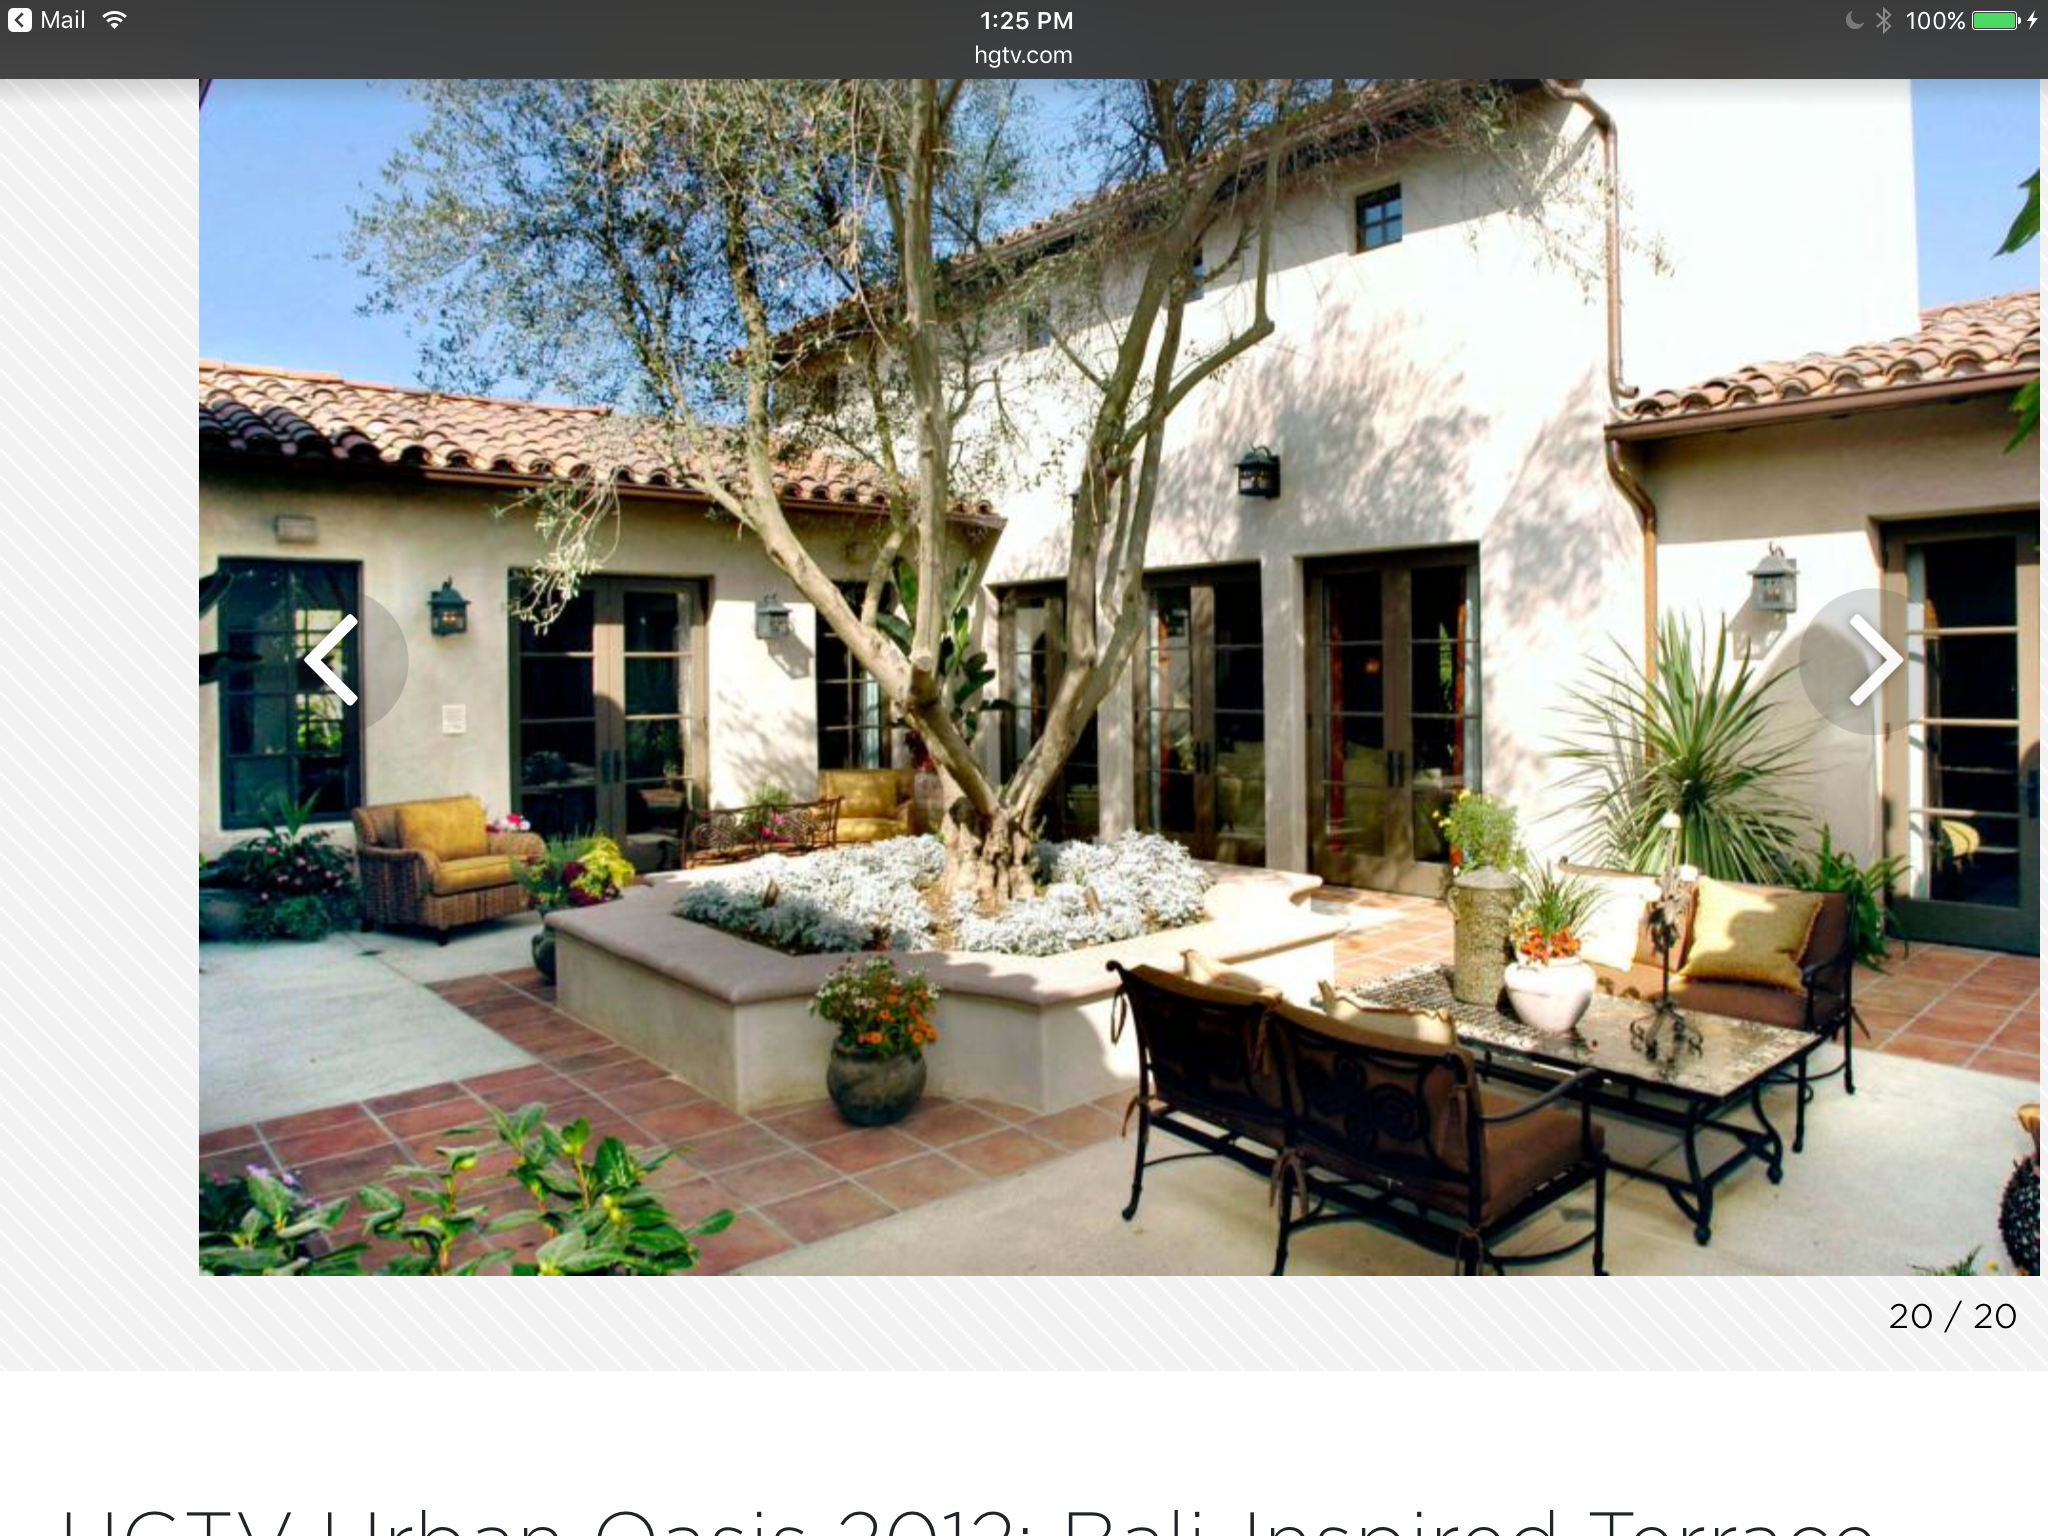 Pin By Marla Vicente On Patio And Landscape Idea Spanish Style Homes Spanish Courtyard Patio Design